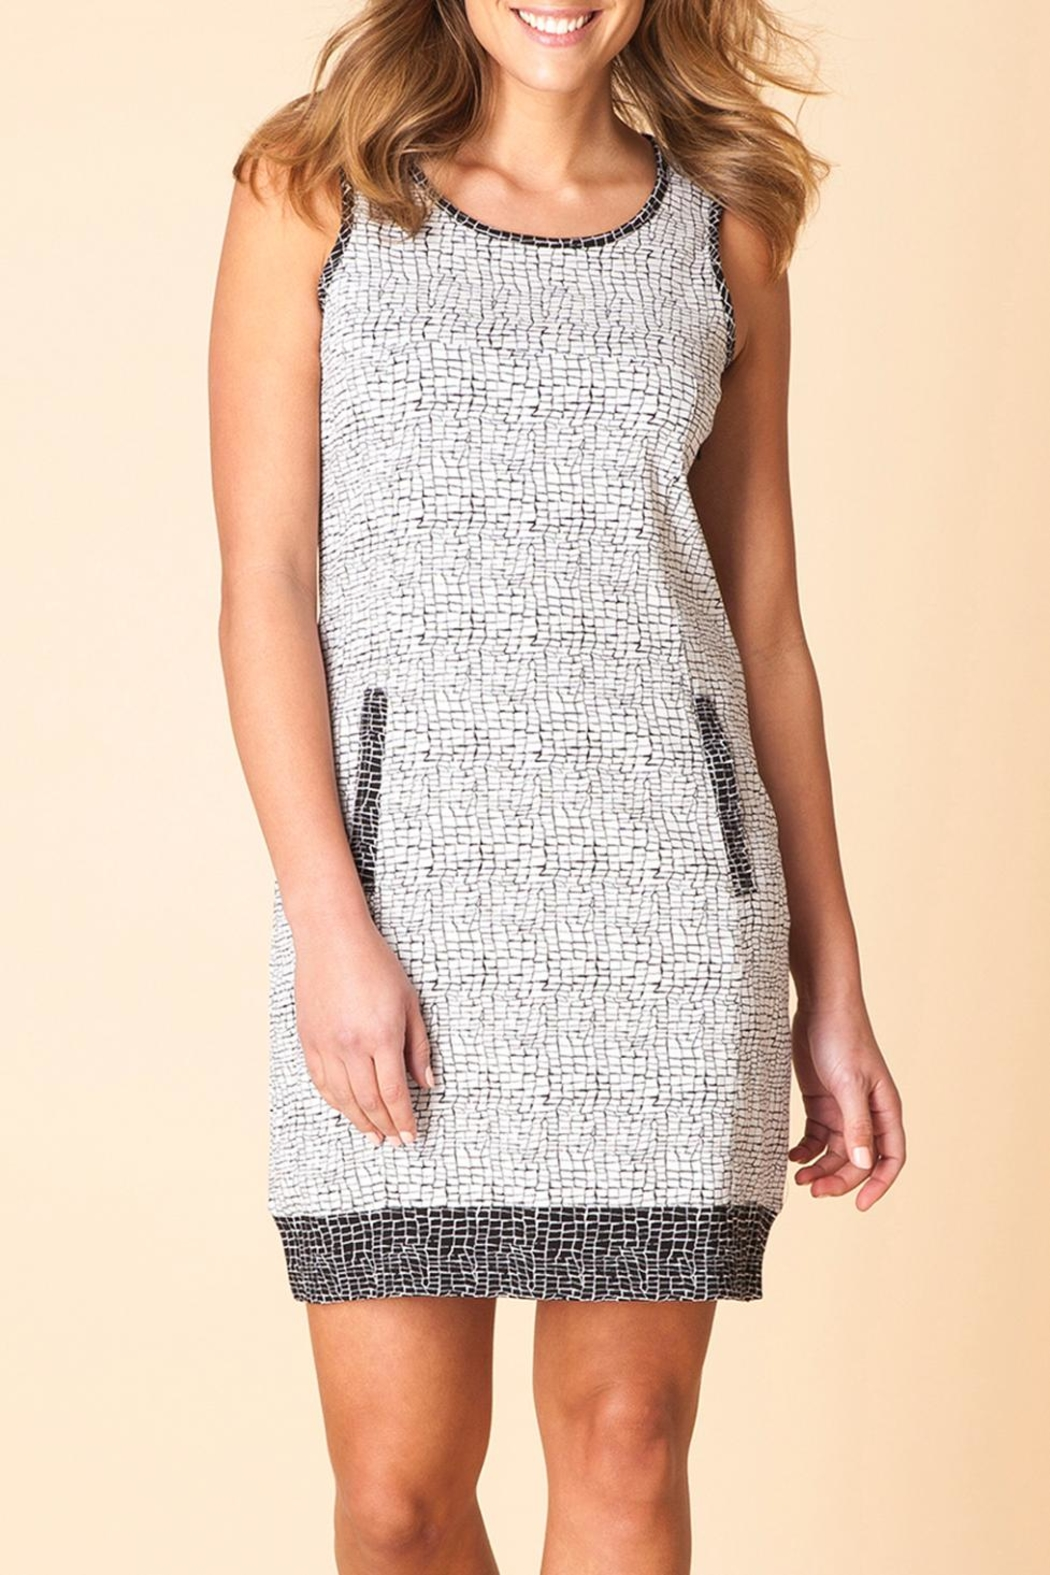 Yest Sleeveless Print Dress - Main Image